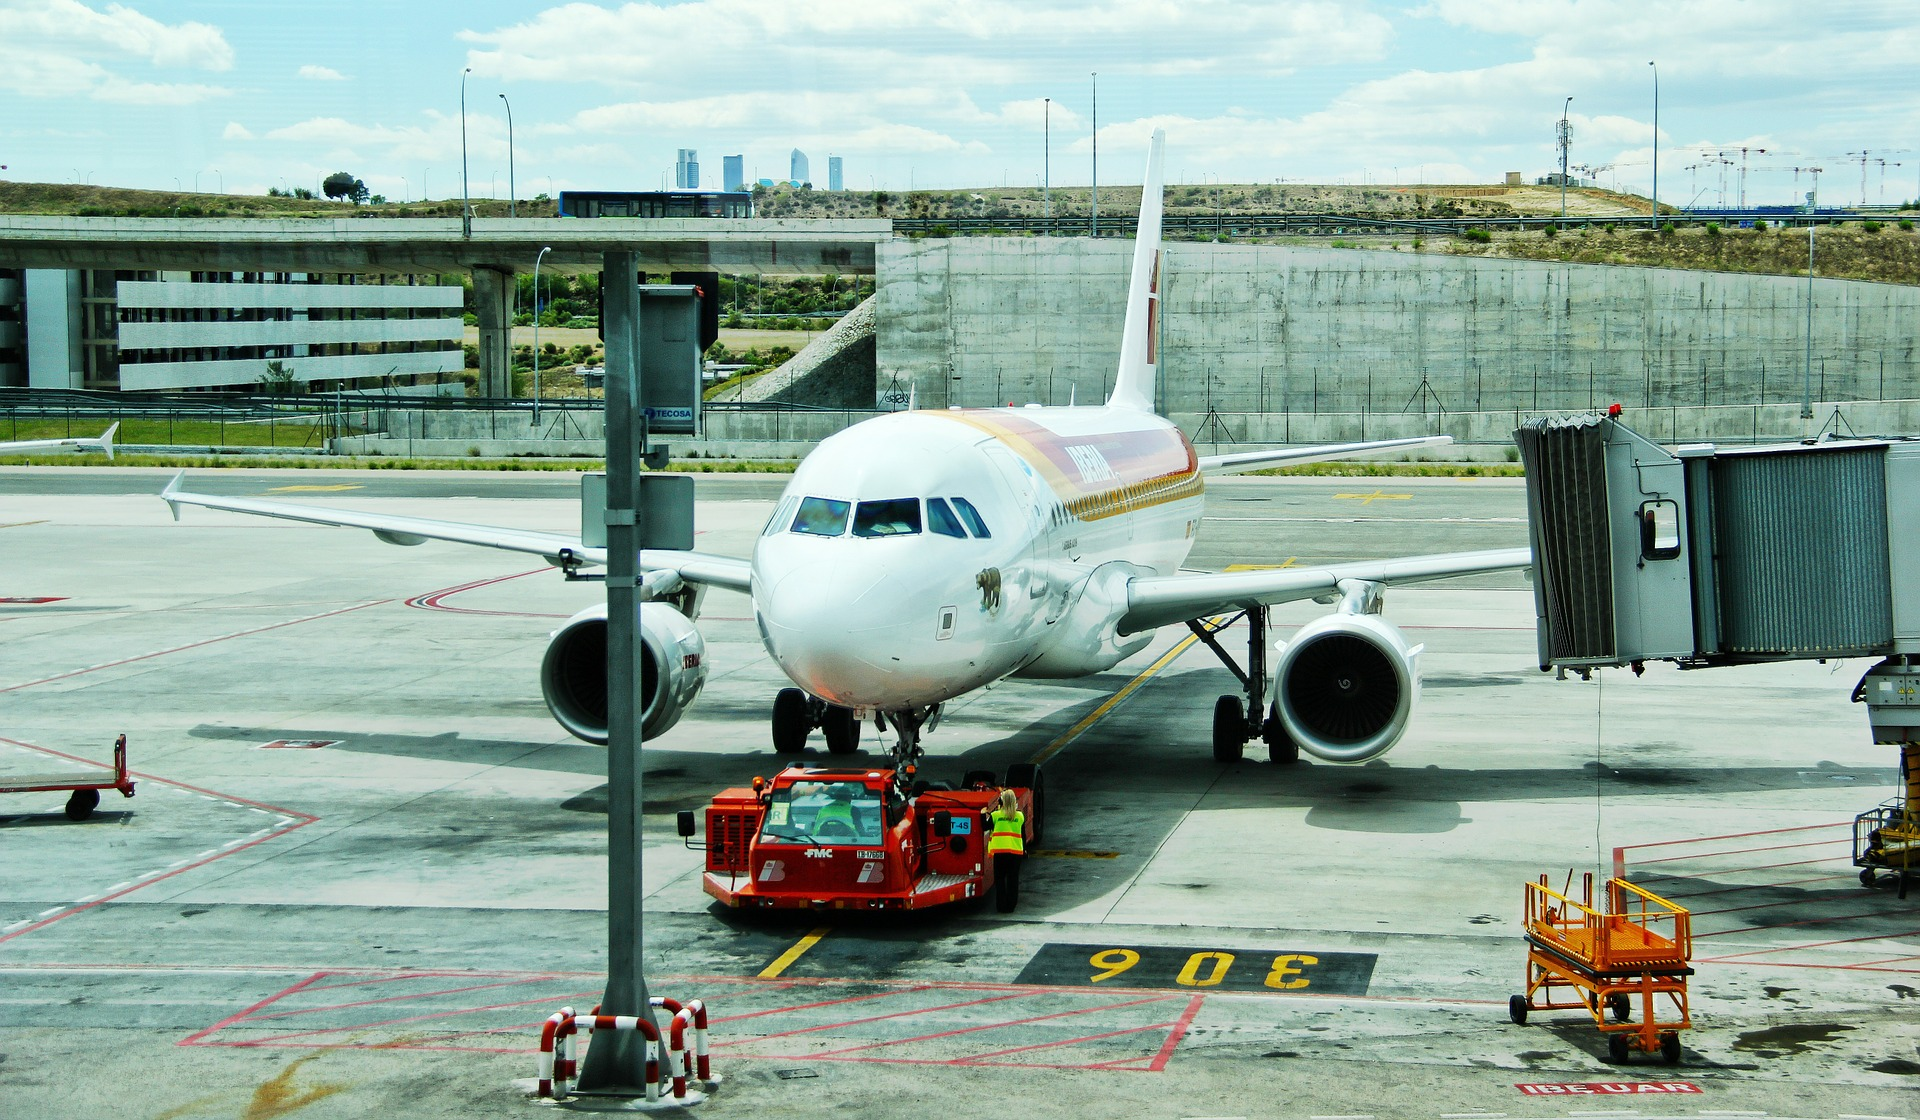 World of Airports facts